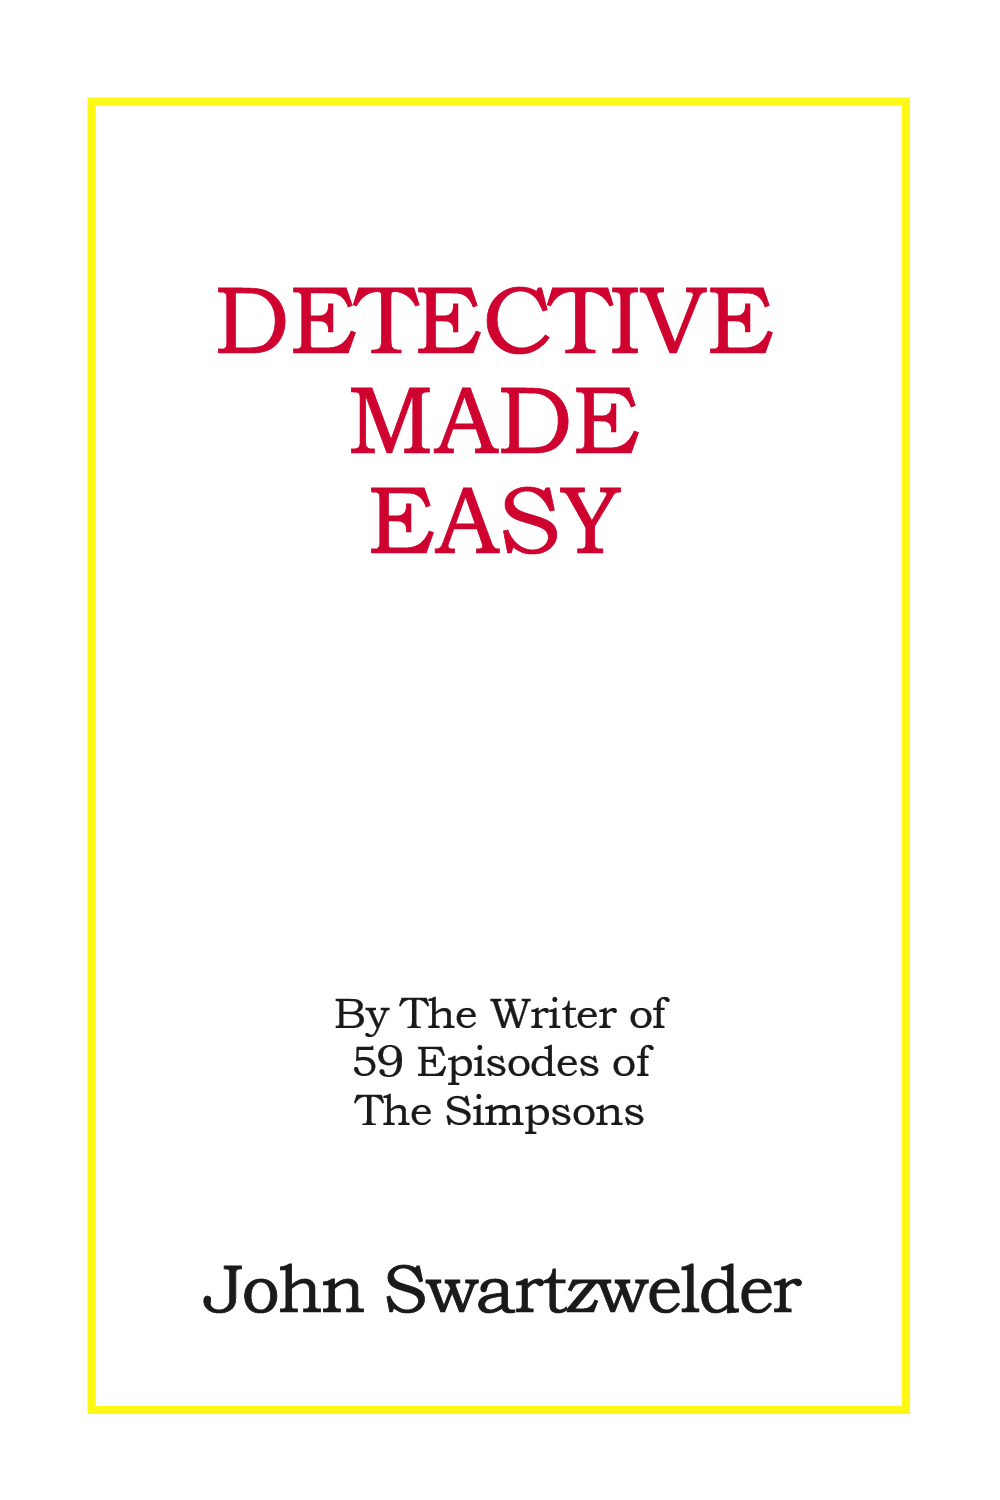 Detective Made Easy by John Swartzwelder